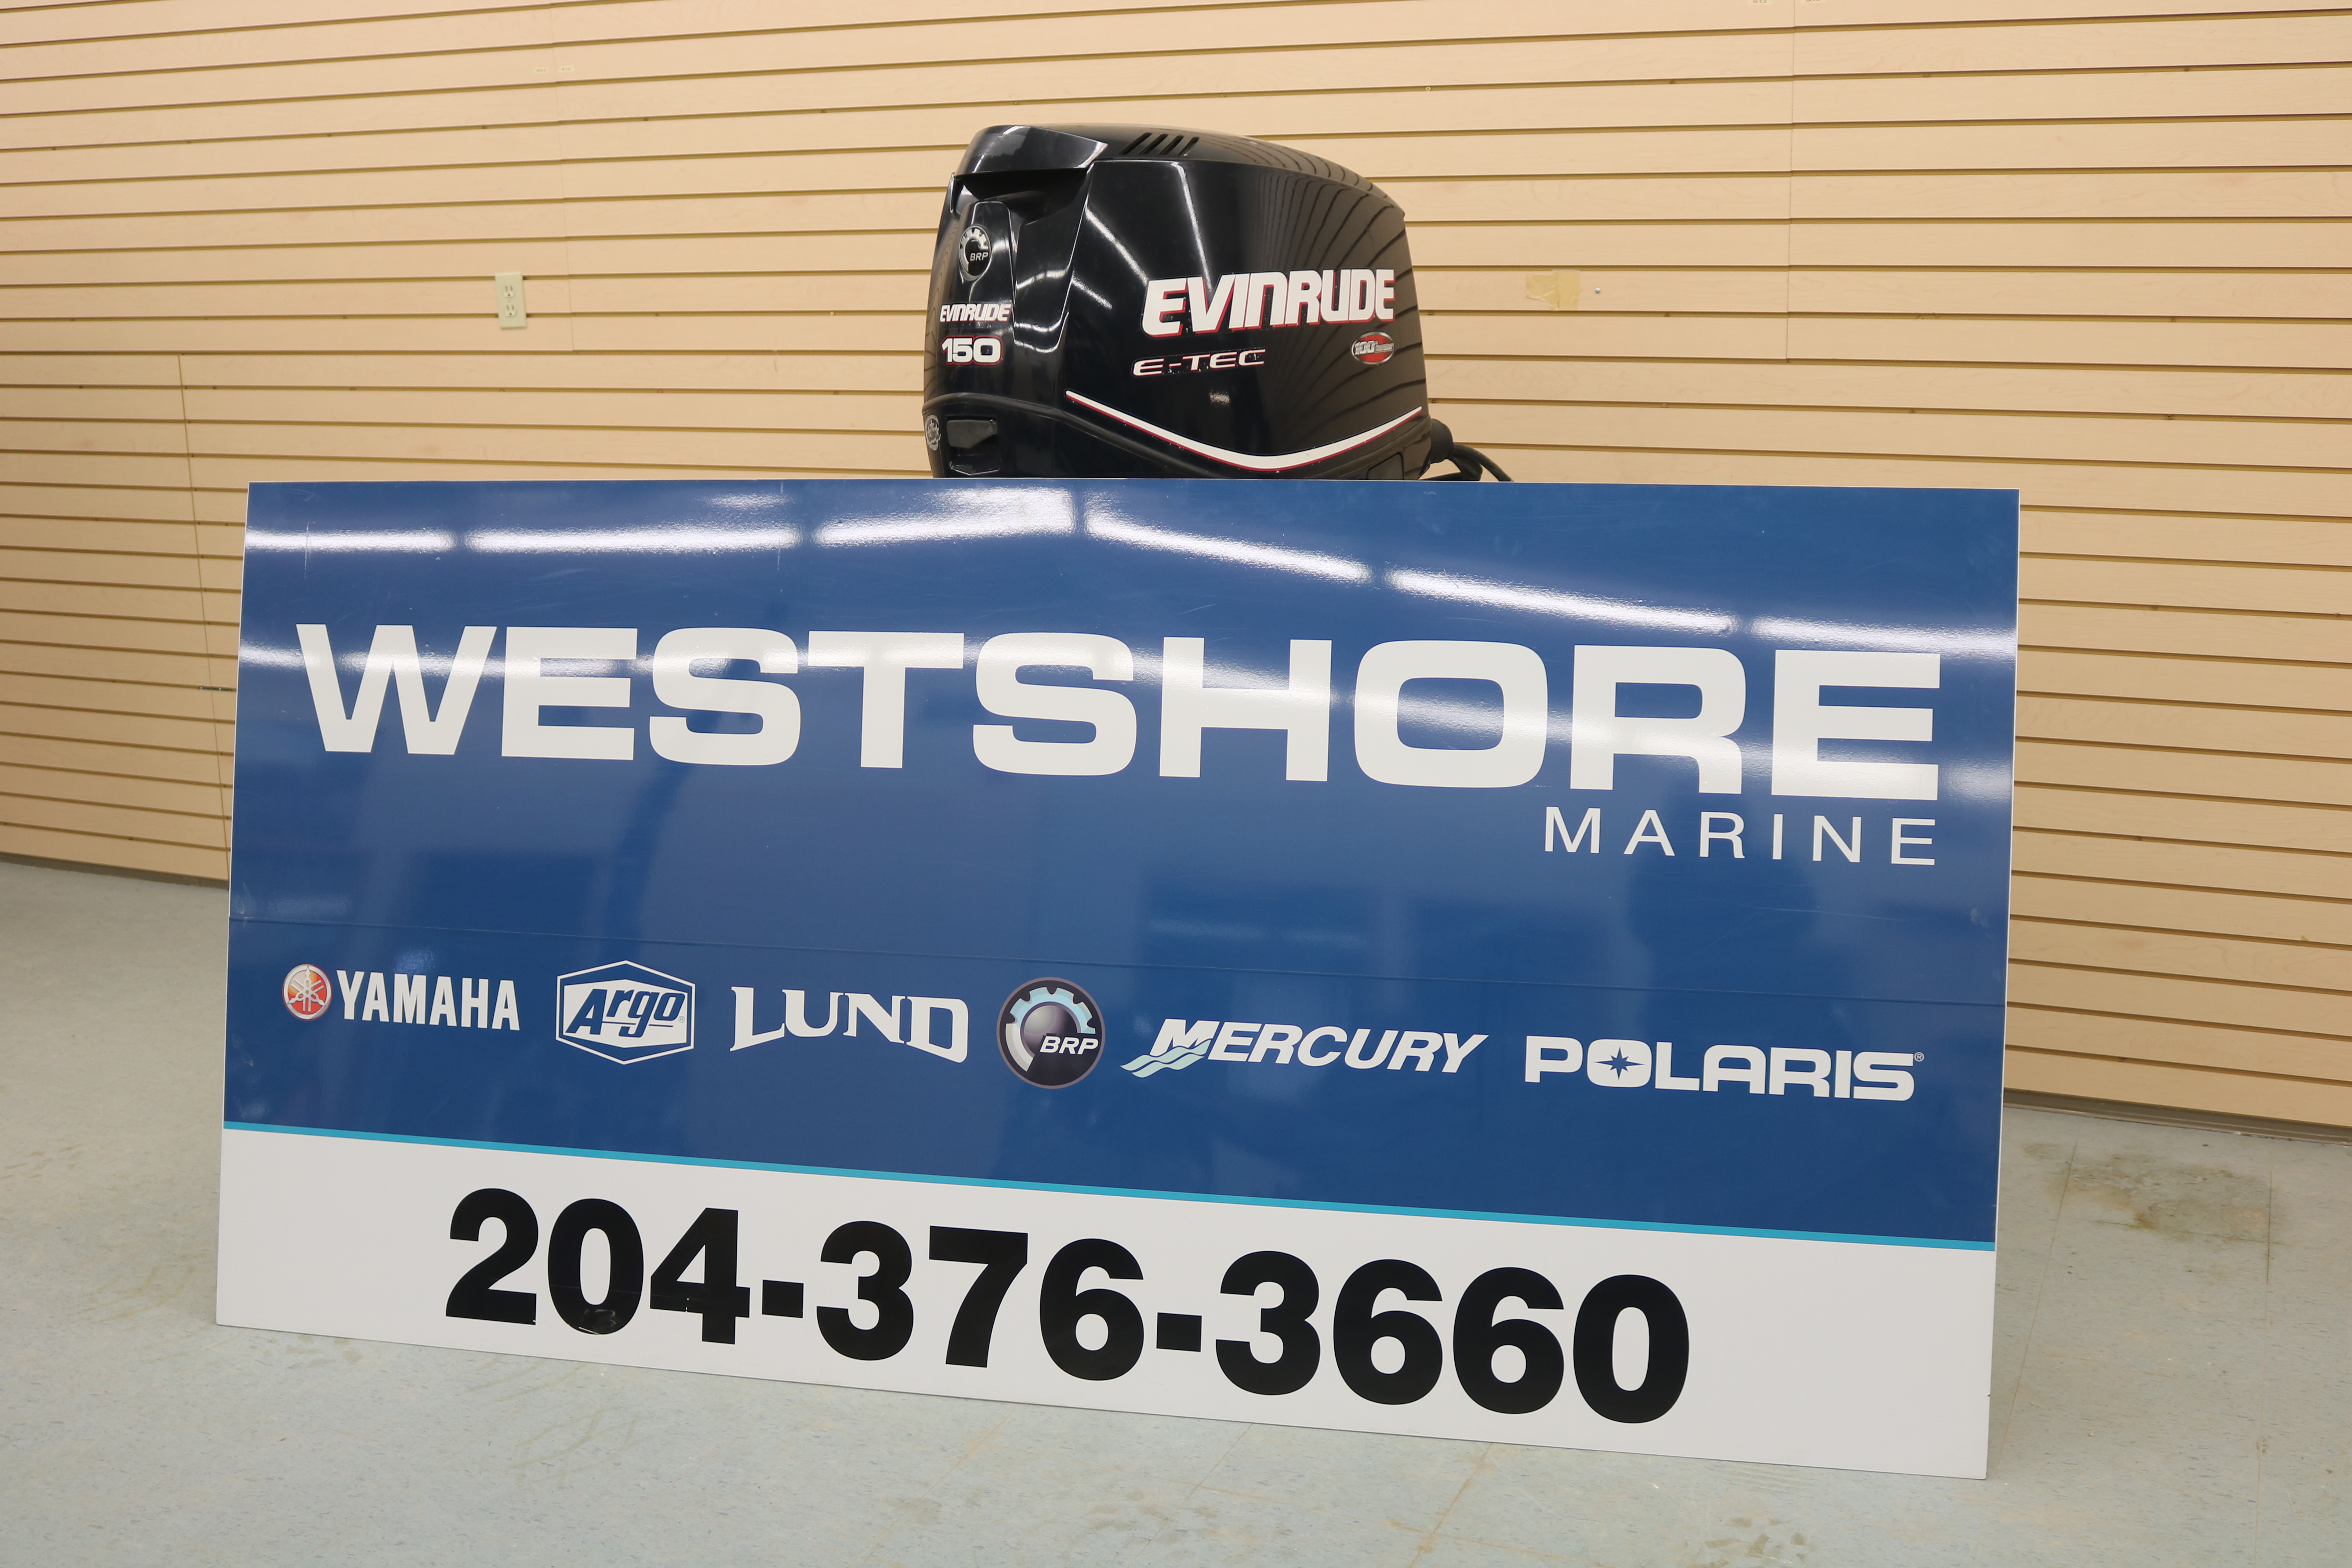 50 Used Boats & Powersports in Stock in Arborg